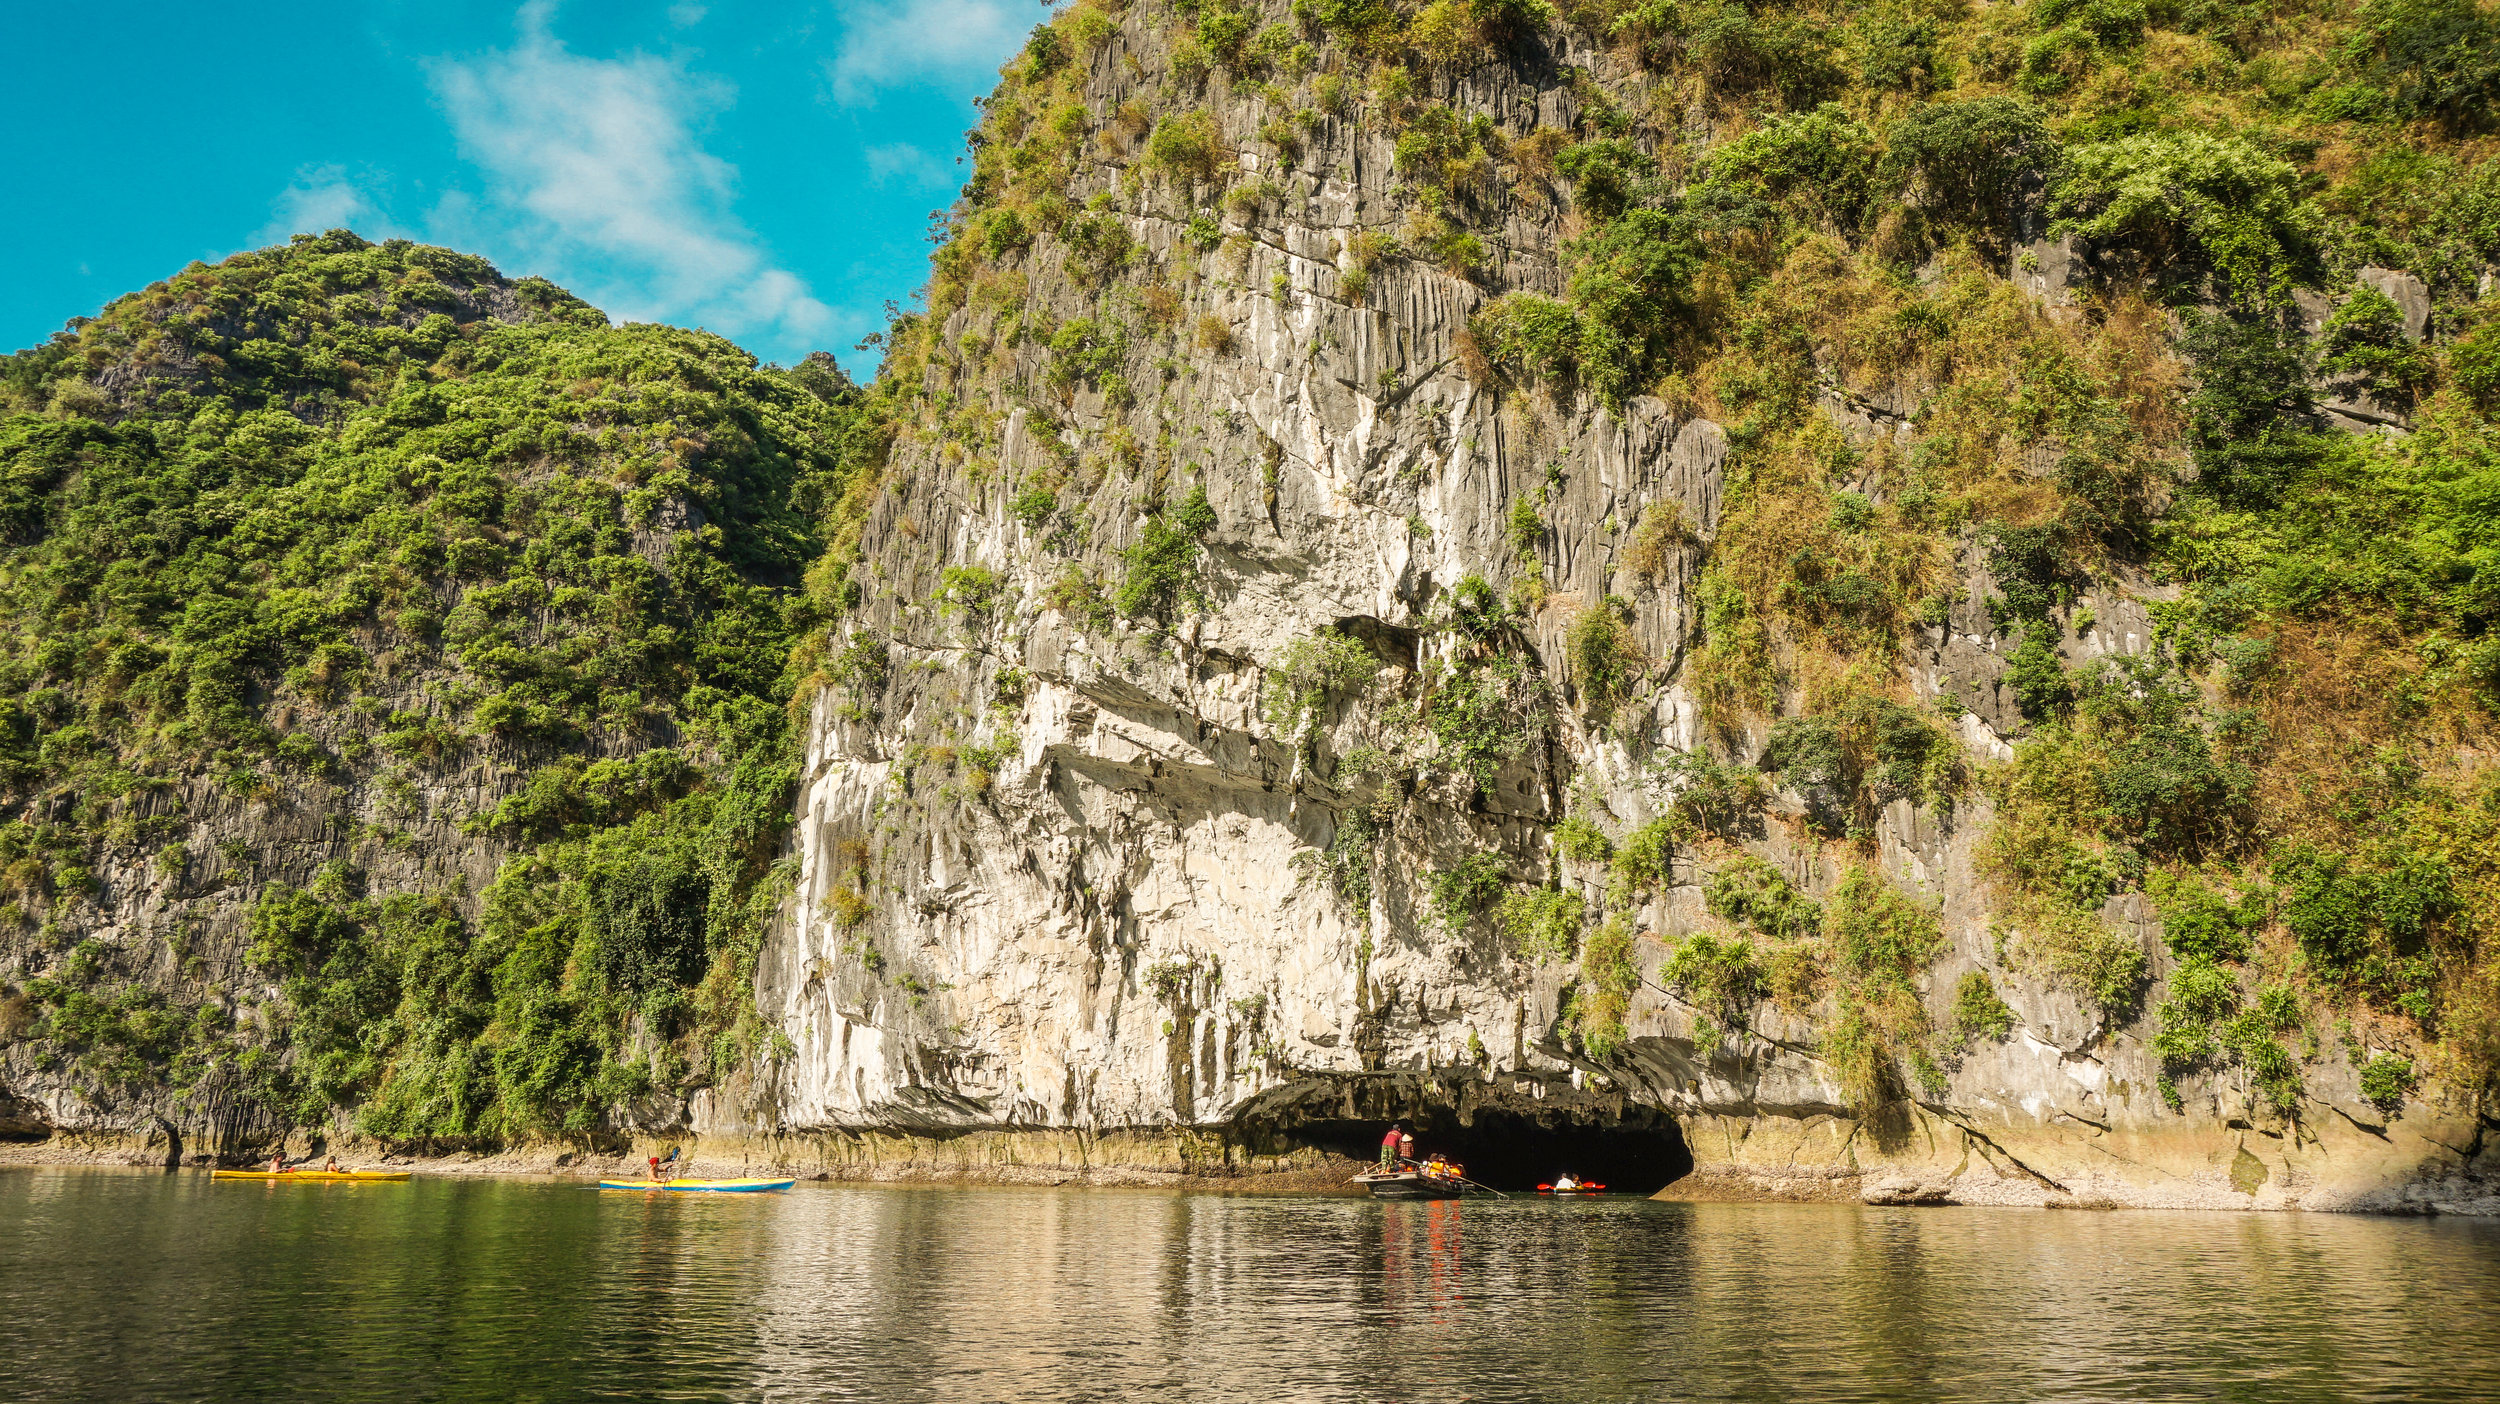 ha-long-bay-vietnam-2019.jpg